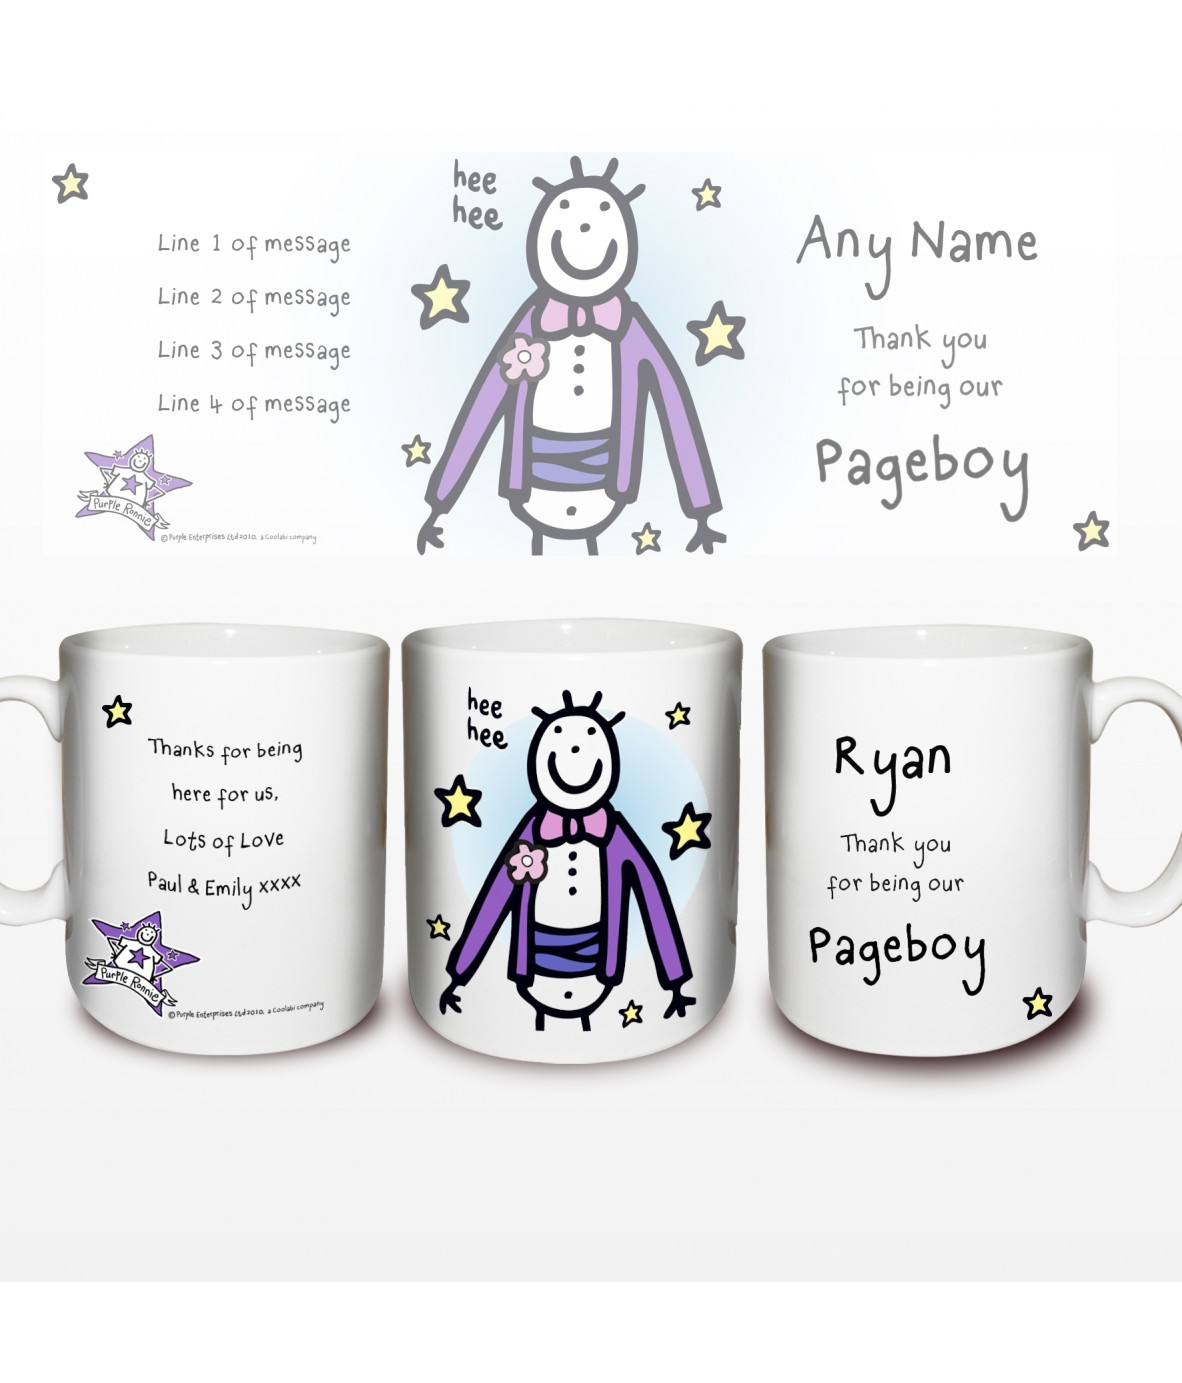 Wedding Gift Ideas For Pageboy : Personalised Purple Ronnie Wedding Pageboy MugJust for Gifts